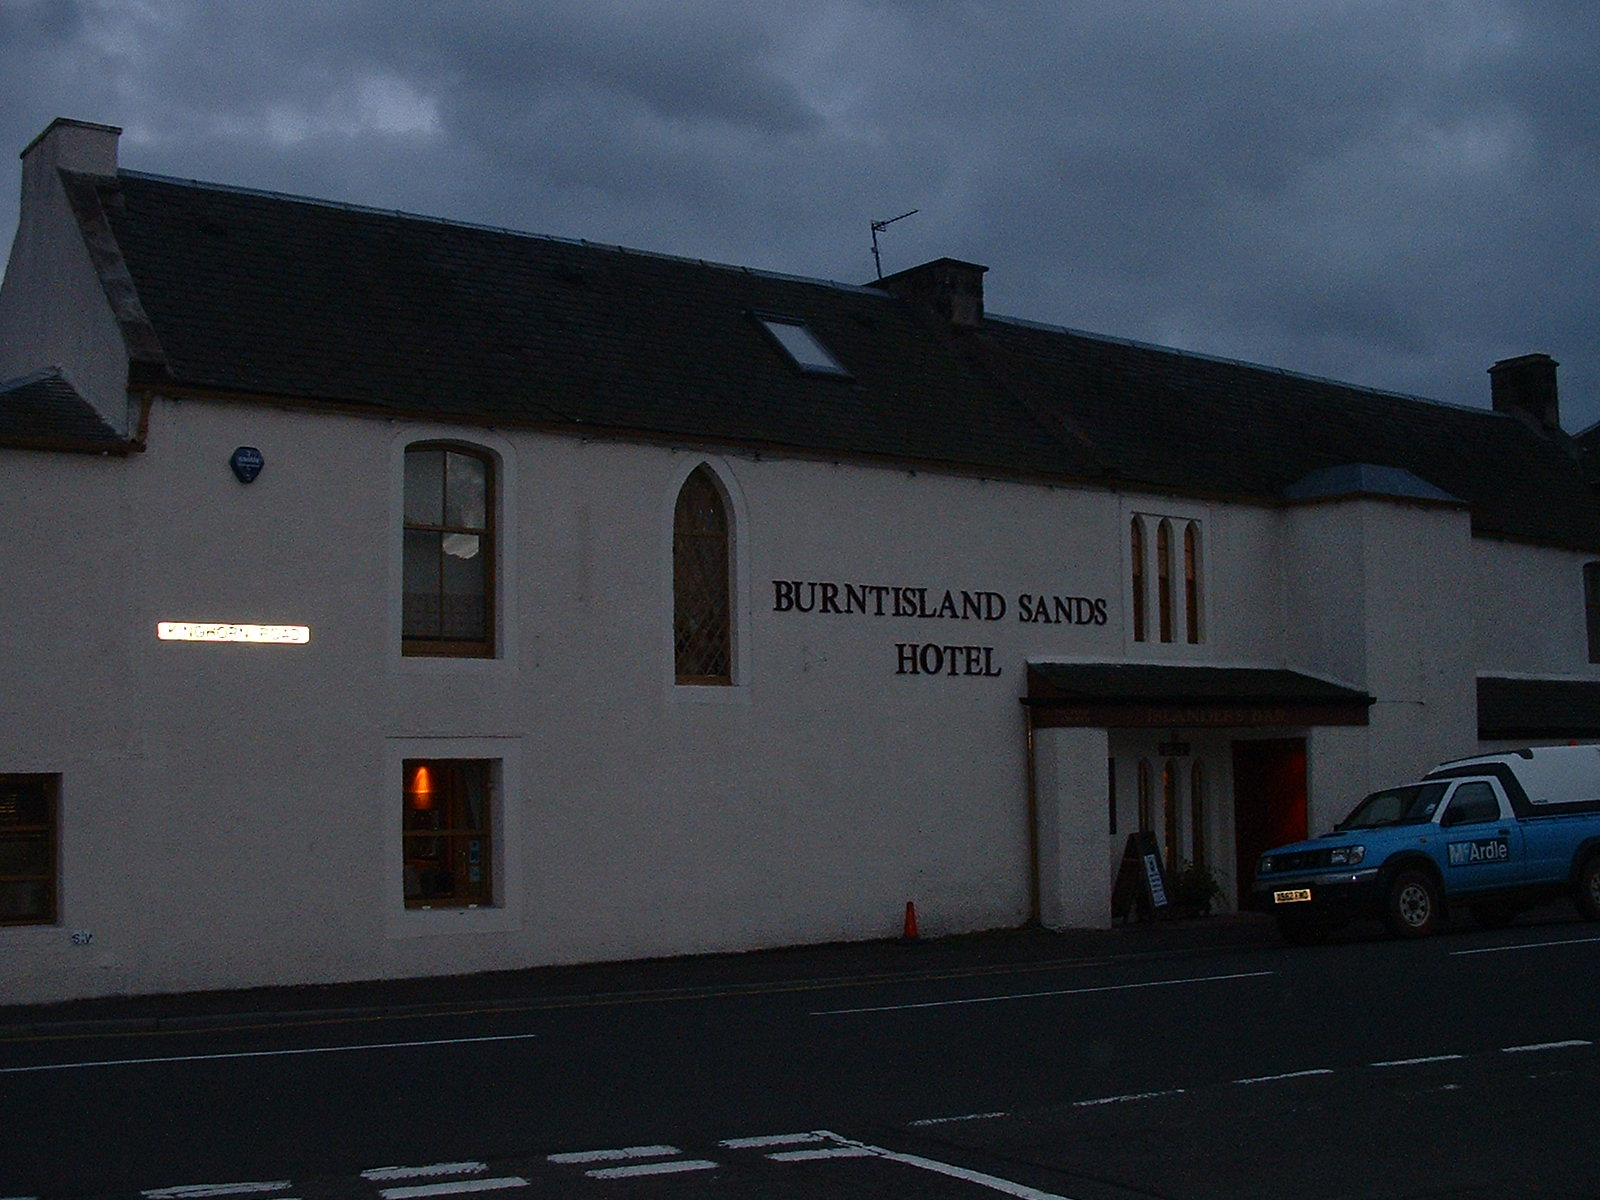 picture of Sands Hotel Burntisland